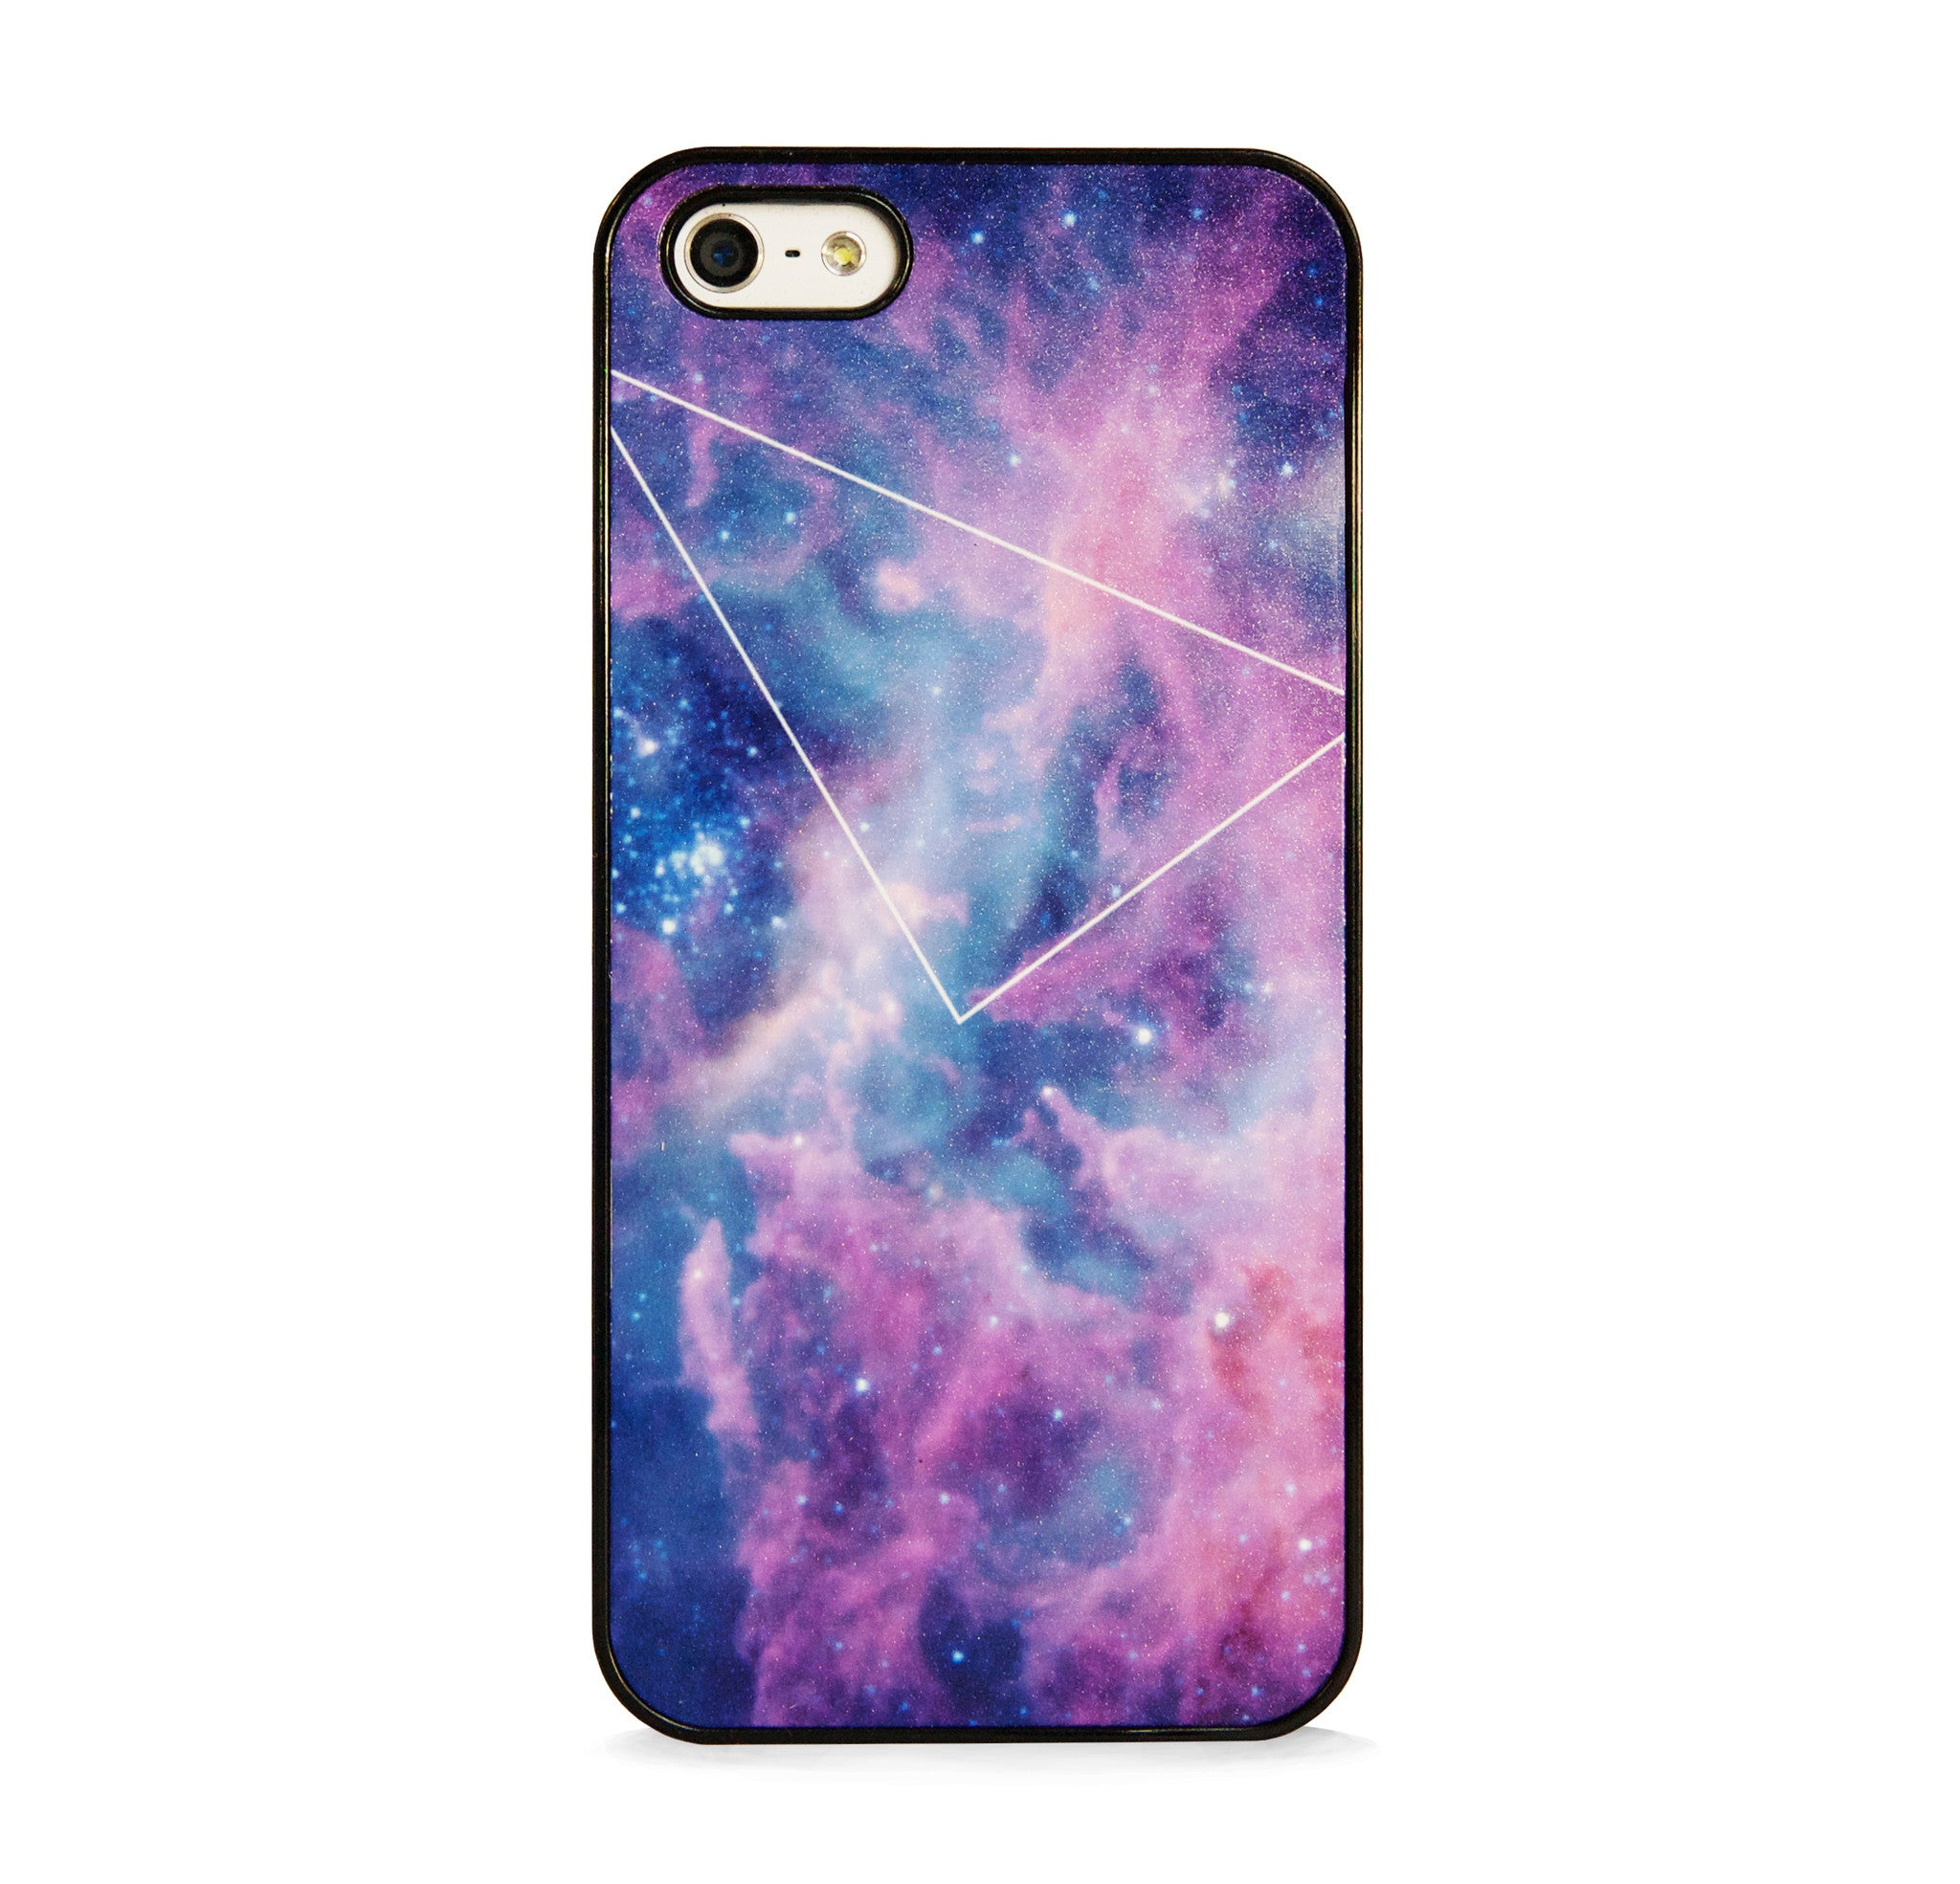 GALAXY PURPLE WITH GEO LINE FOR IPHONE 5/5S